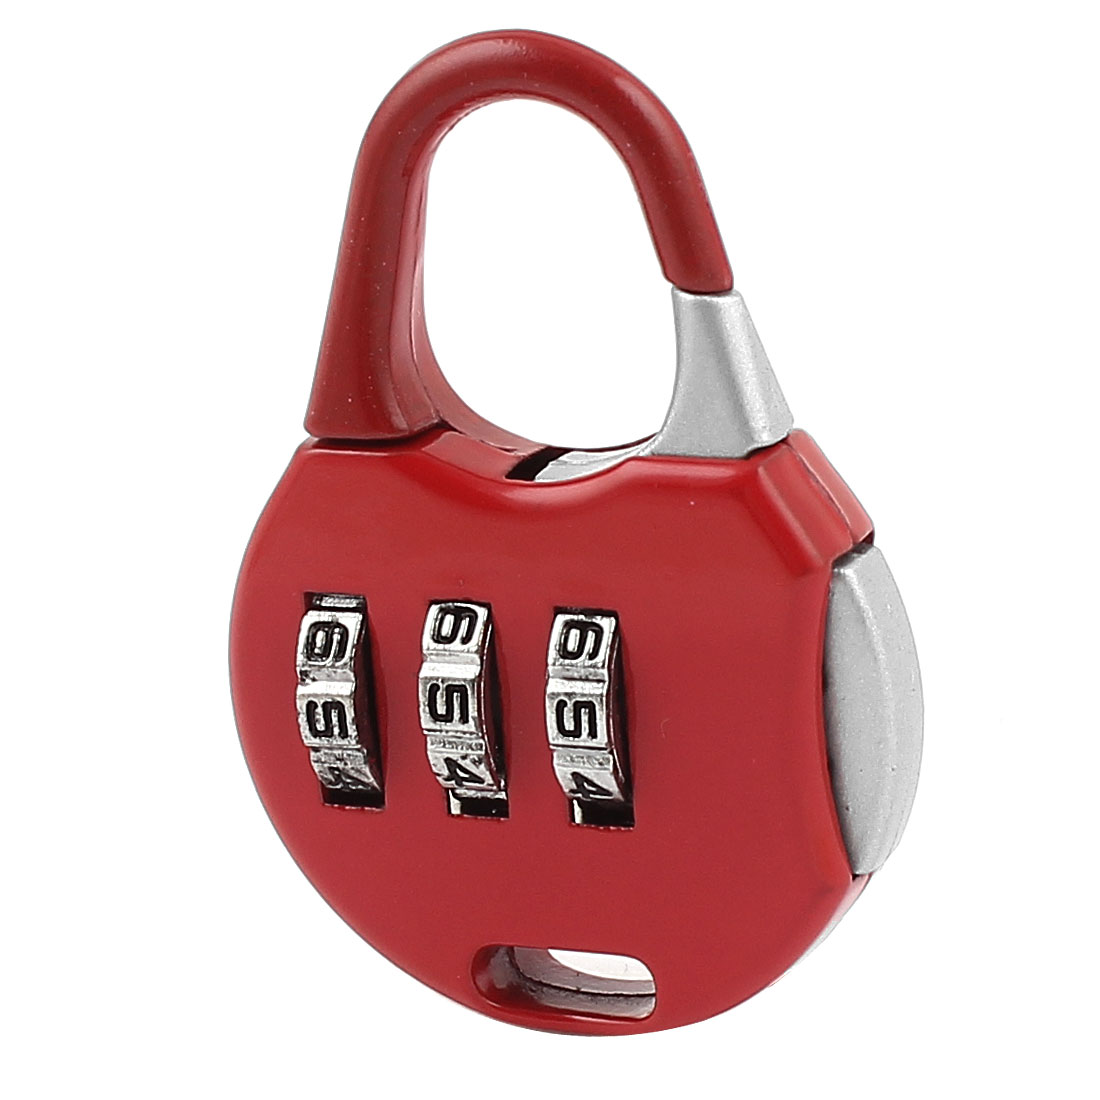 Red 3 Digits Security Password Combination Coded Travel Luggage Padlock